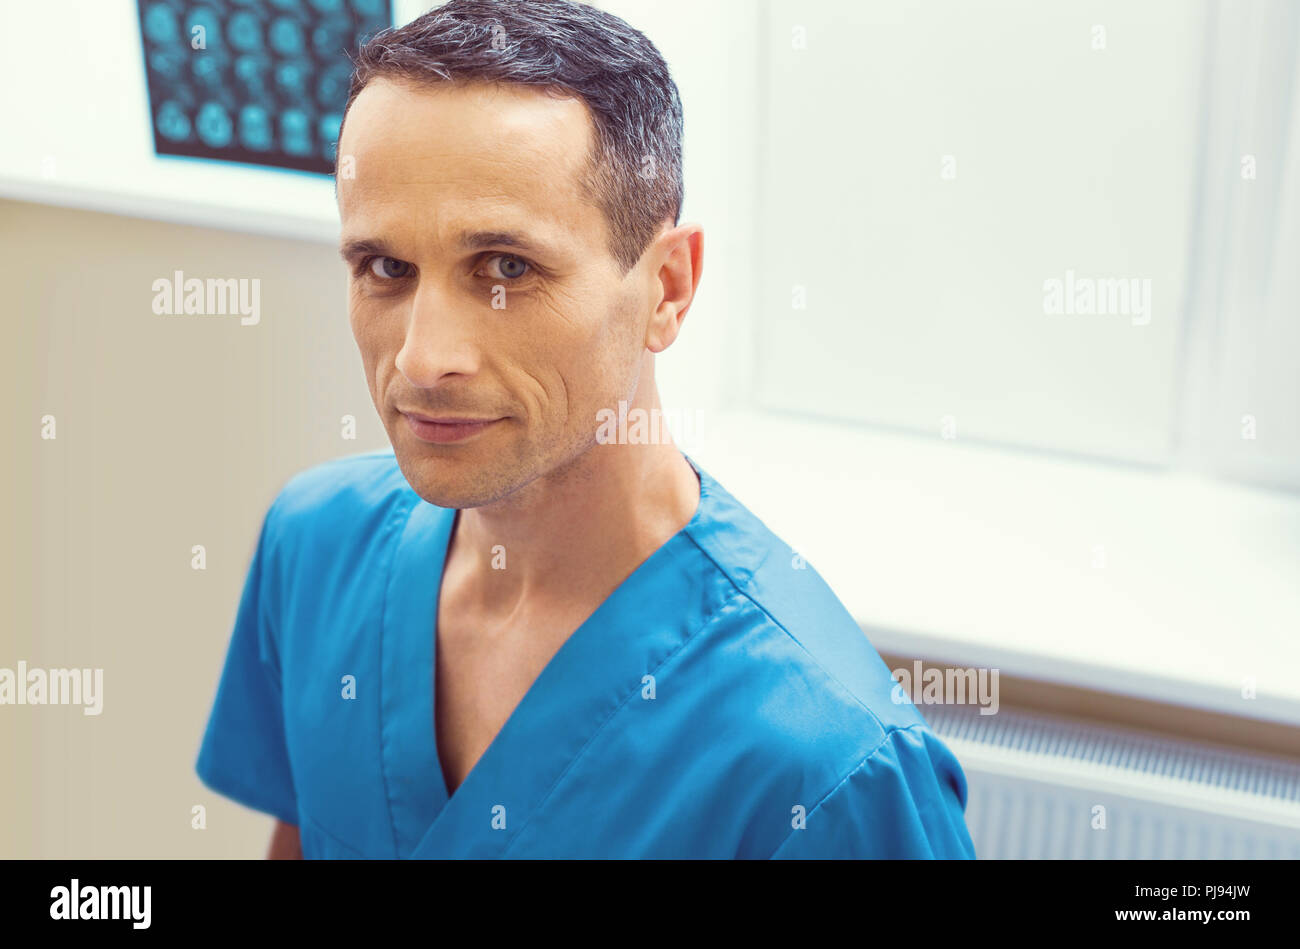 Confident mature laboratory worker looking into camera - Stock Image